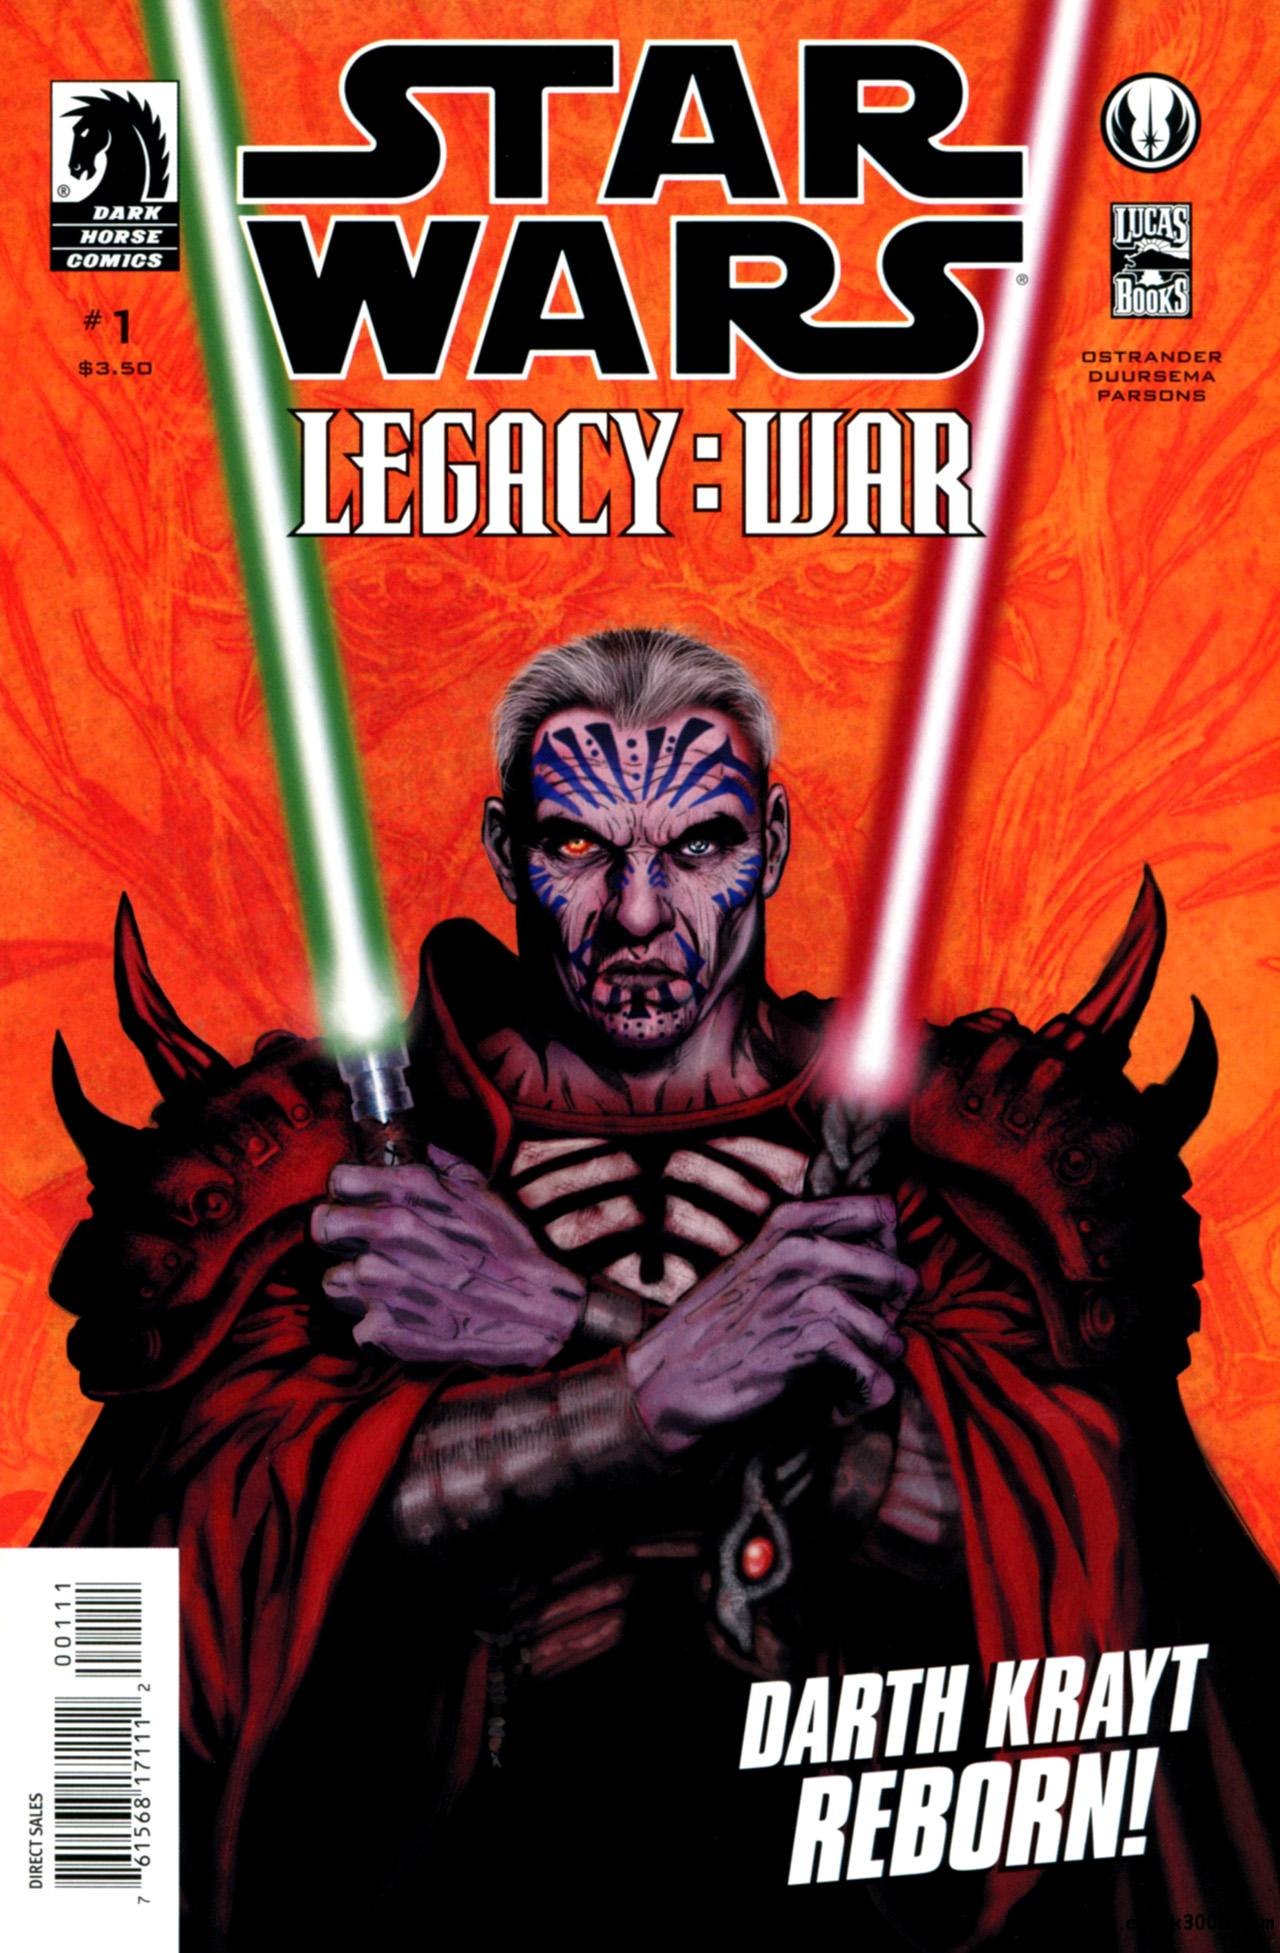 Star Wars: Legacy - War #1-6 [complete] free download